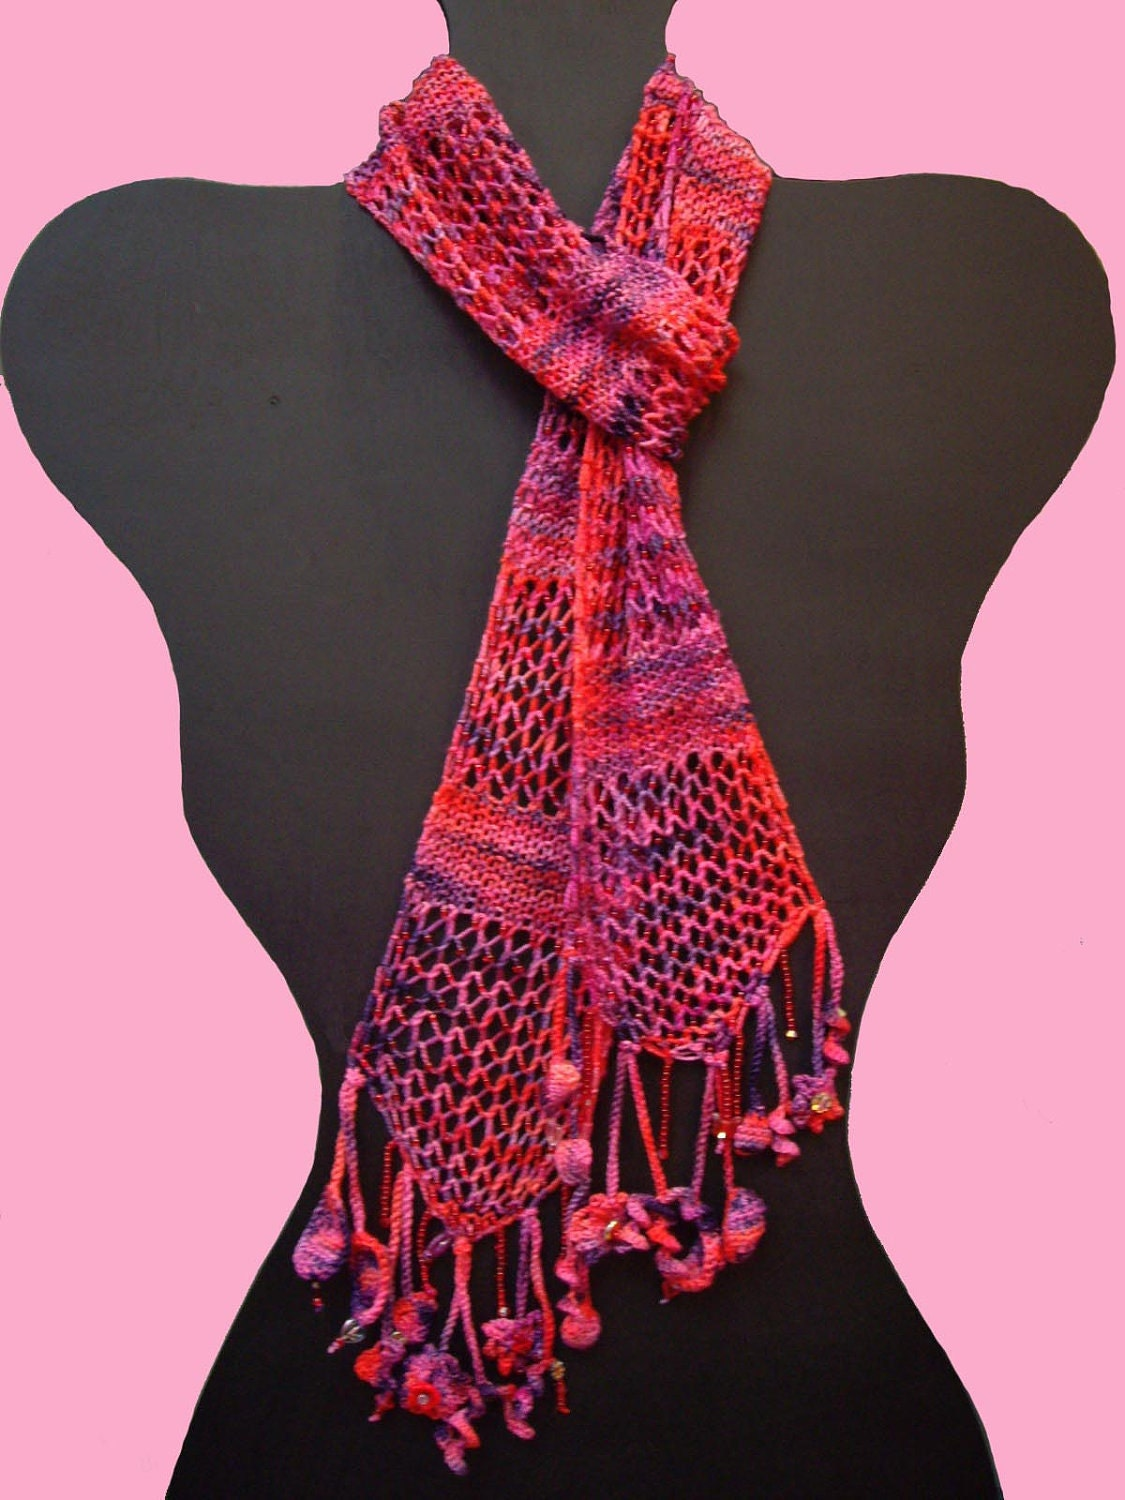 Beaded Garden Party Scarf Knitting Pattern via by yarnartists